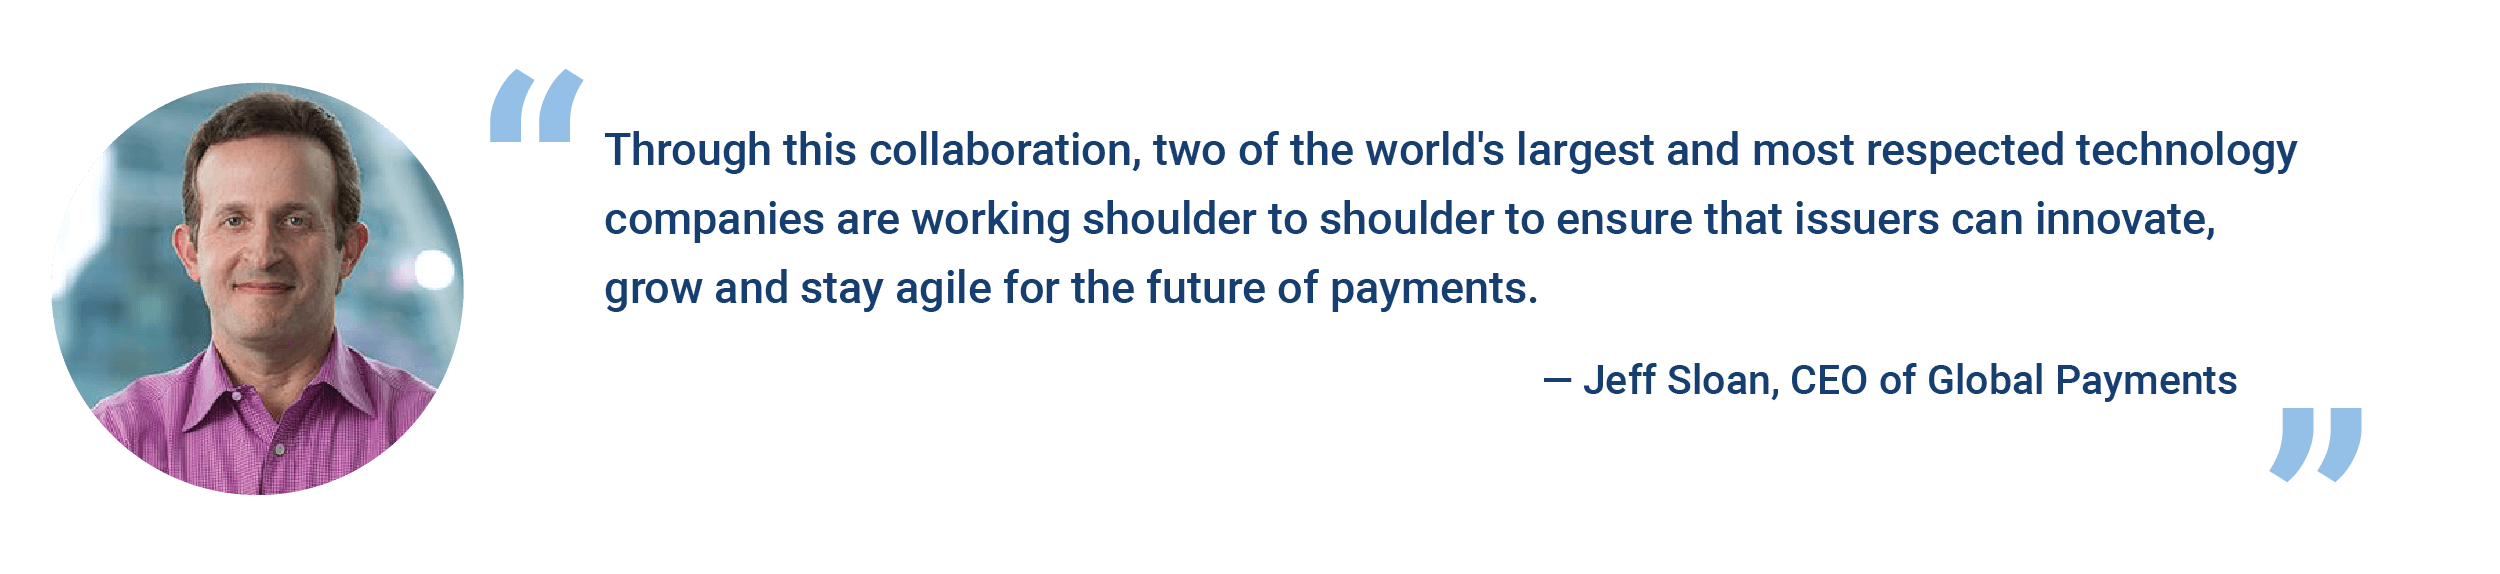 """""""Through this collaboration, two of the world's largest and most respected technology companies are working shoulder to shoulder to ensure that issuers can innovate, grow and stay agile for the future of payments."""" - Jeff Sloan, CEO of Global Payments"""